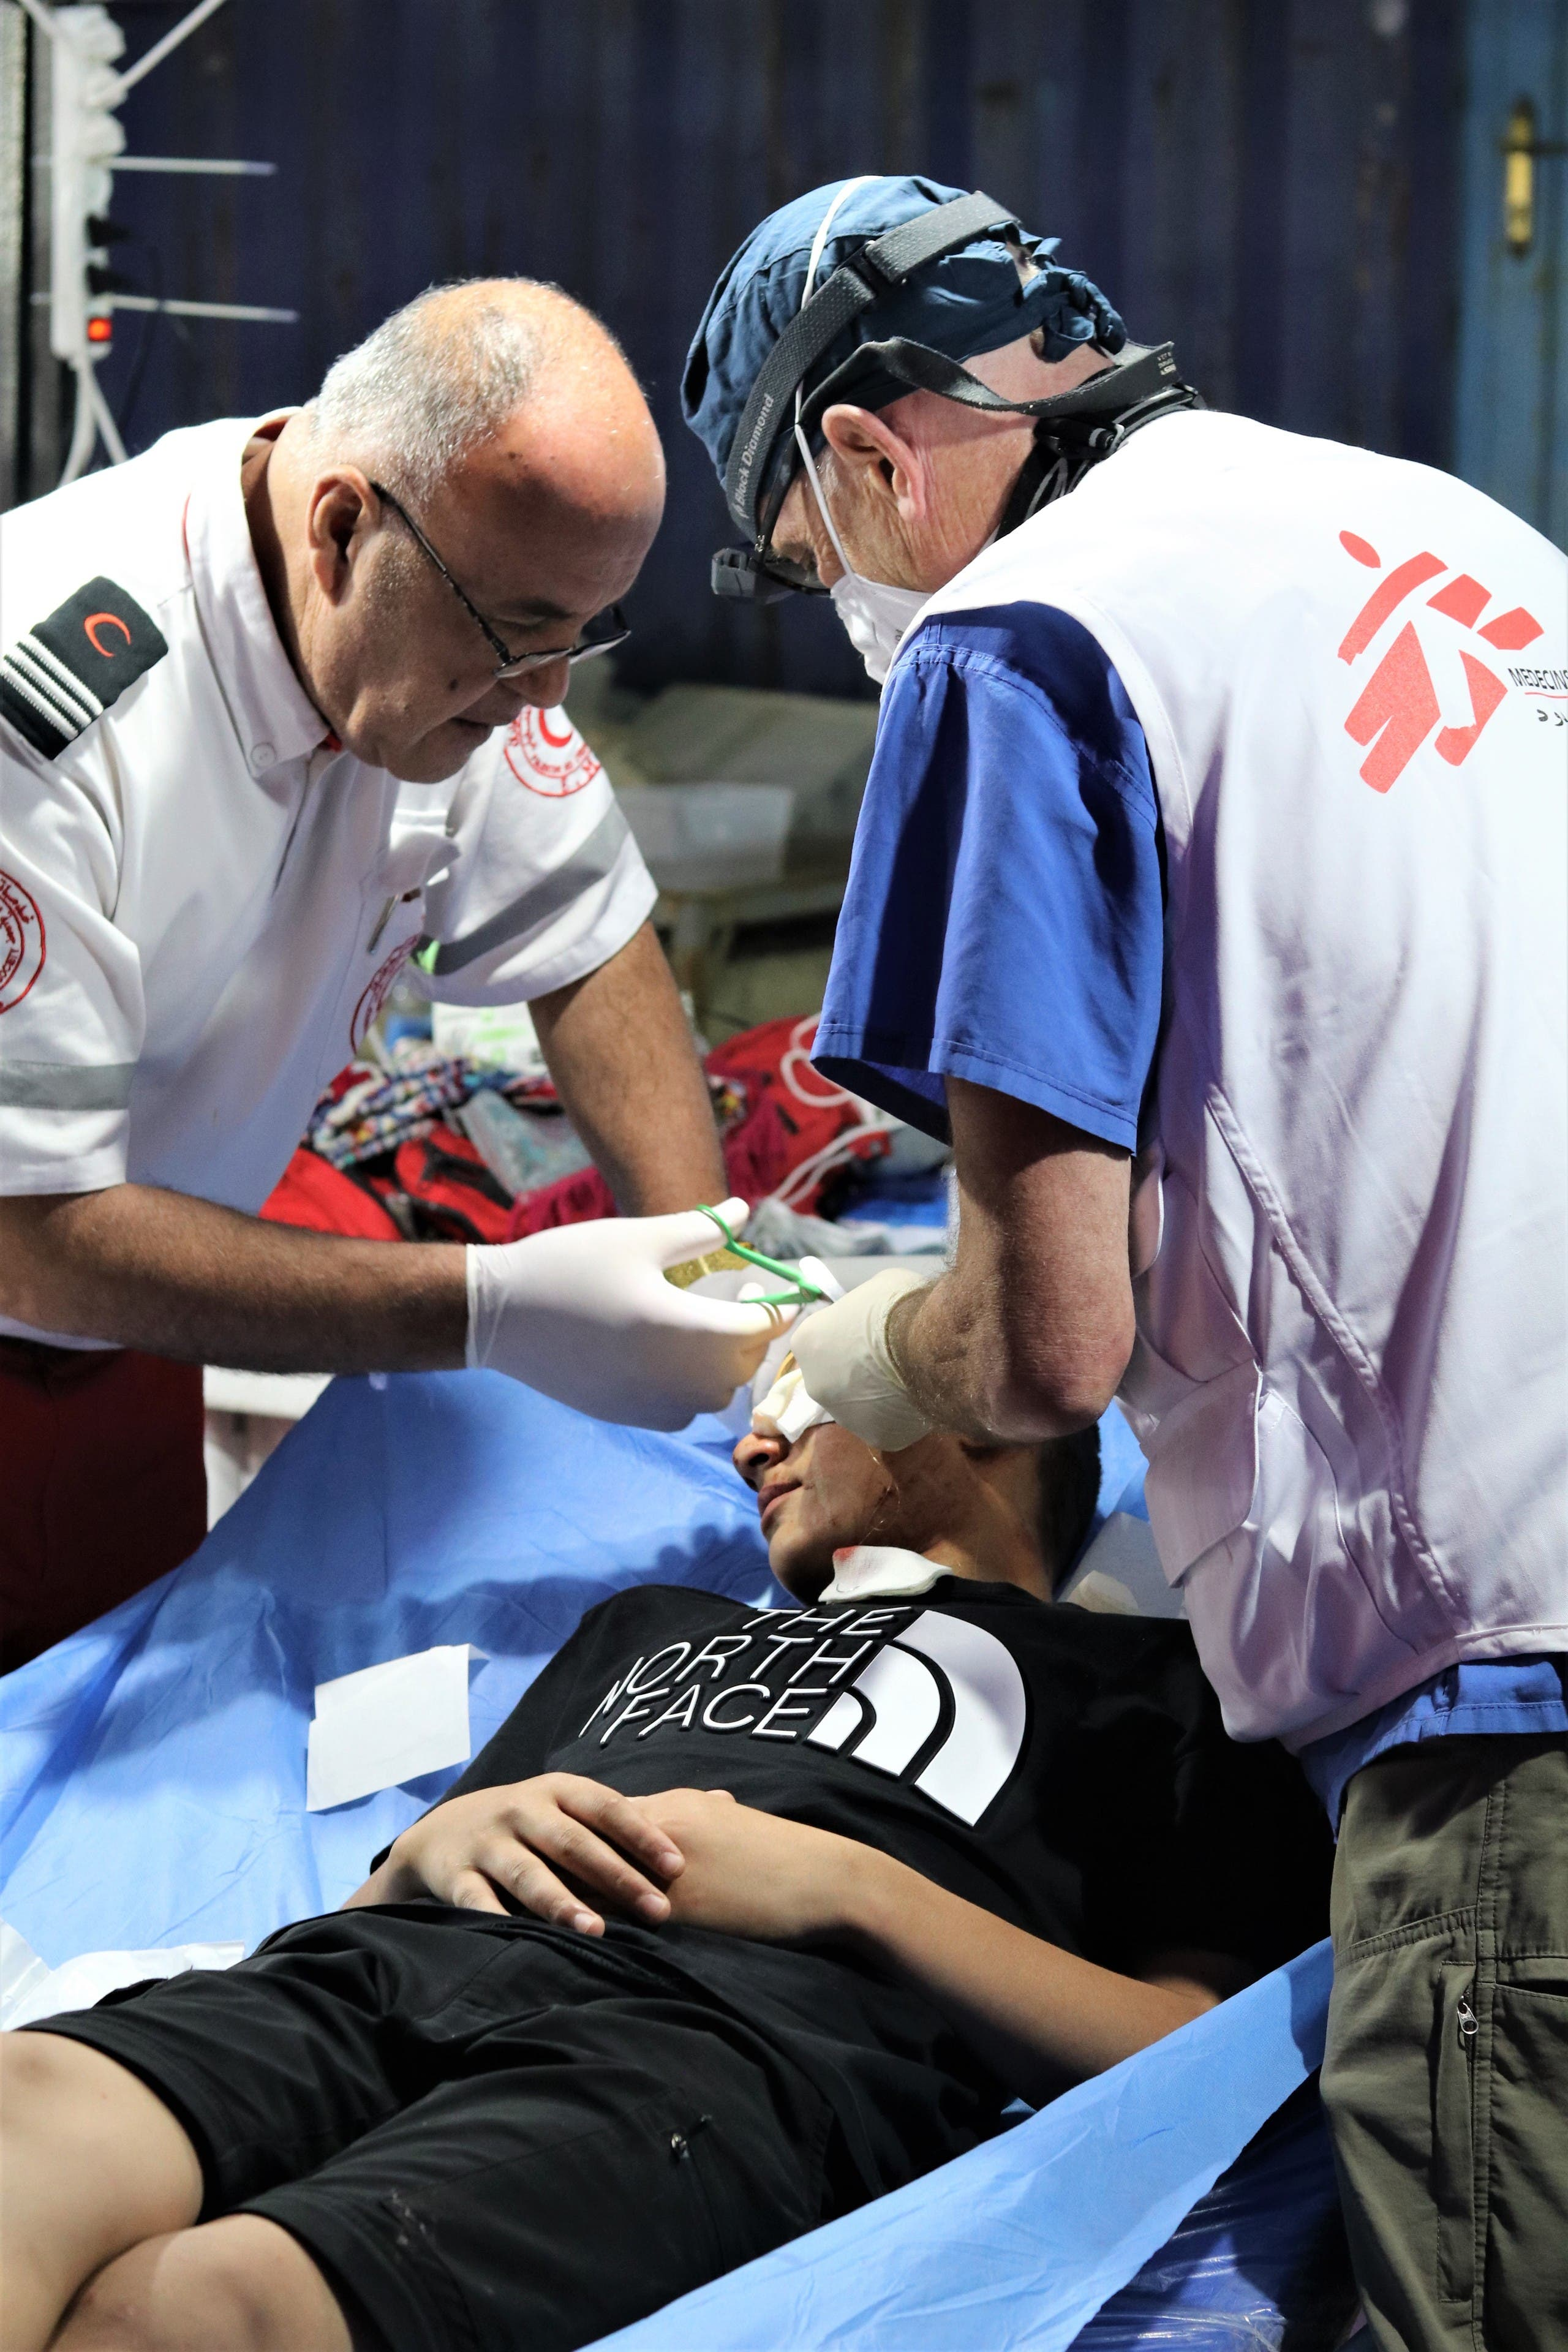 At least 612 Palestinians, including children, were injured on Monday, according to the Palestinian Red Crescent Society, with 411 patients taken to hospital. (Image: MSF)